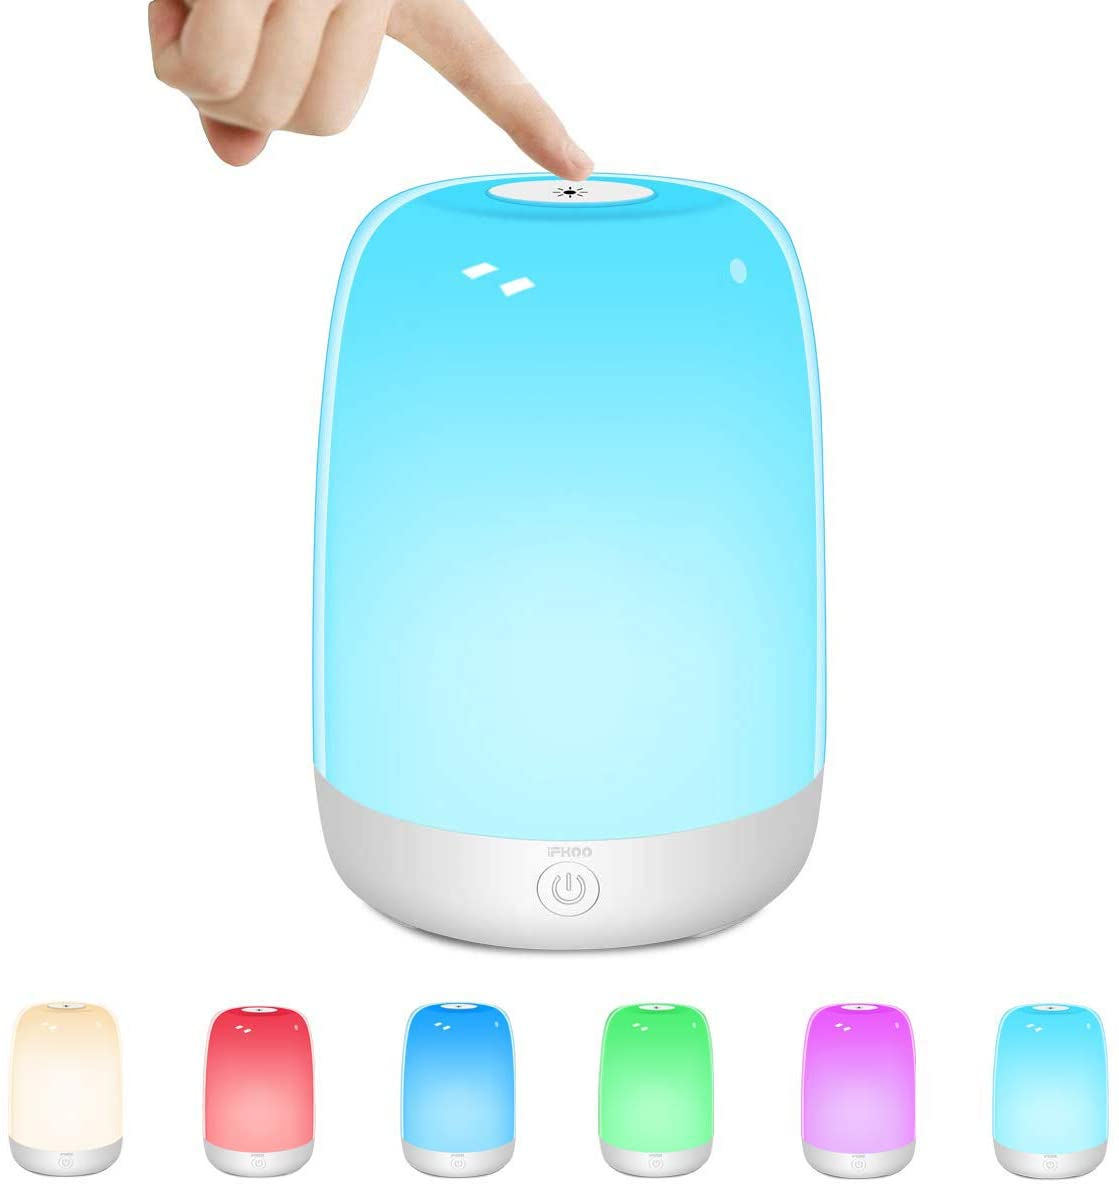 Outdoor Table Lamp, iFkoo Touch Sensor Bedside Lamp with Dimmable Warm Light, Rechargeable Night Light for Bedrooms, Living Rooms & Color Changing RGB Sleep Lamp, Best Gifts for Baby, Teens, Adults